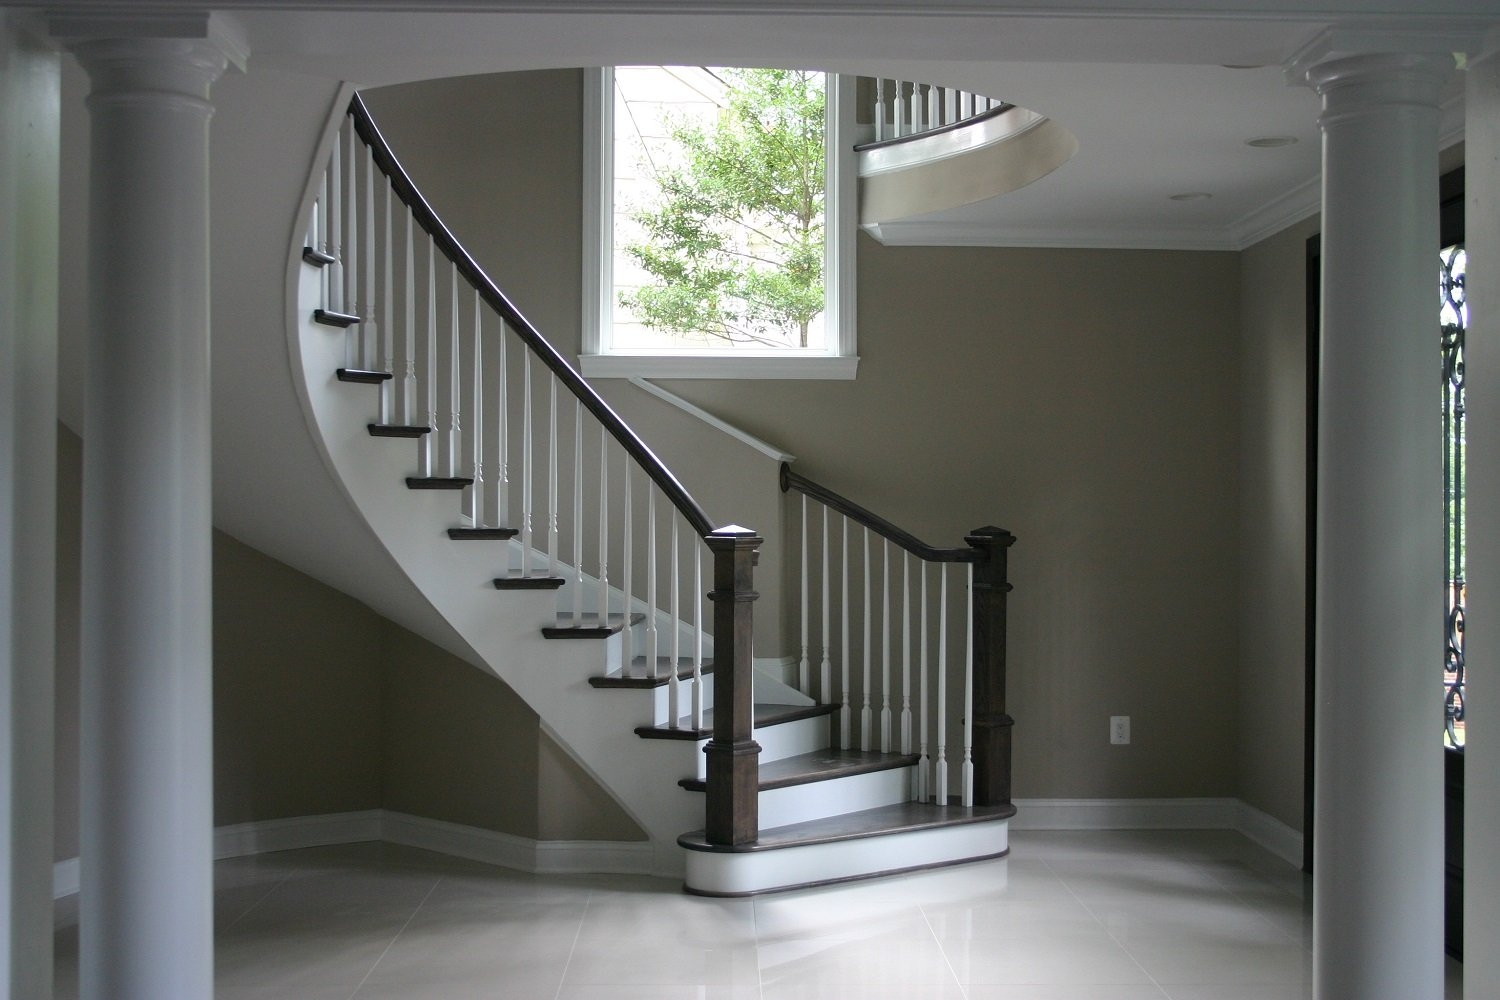 Home Loudoun Stairs | Staircase Replacement Near Me | Deck | Handrail | Carpeted Stairs | Riser | Stair Runner